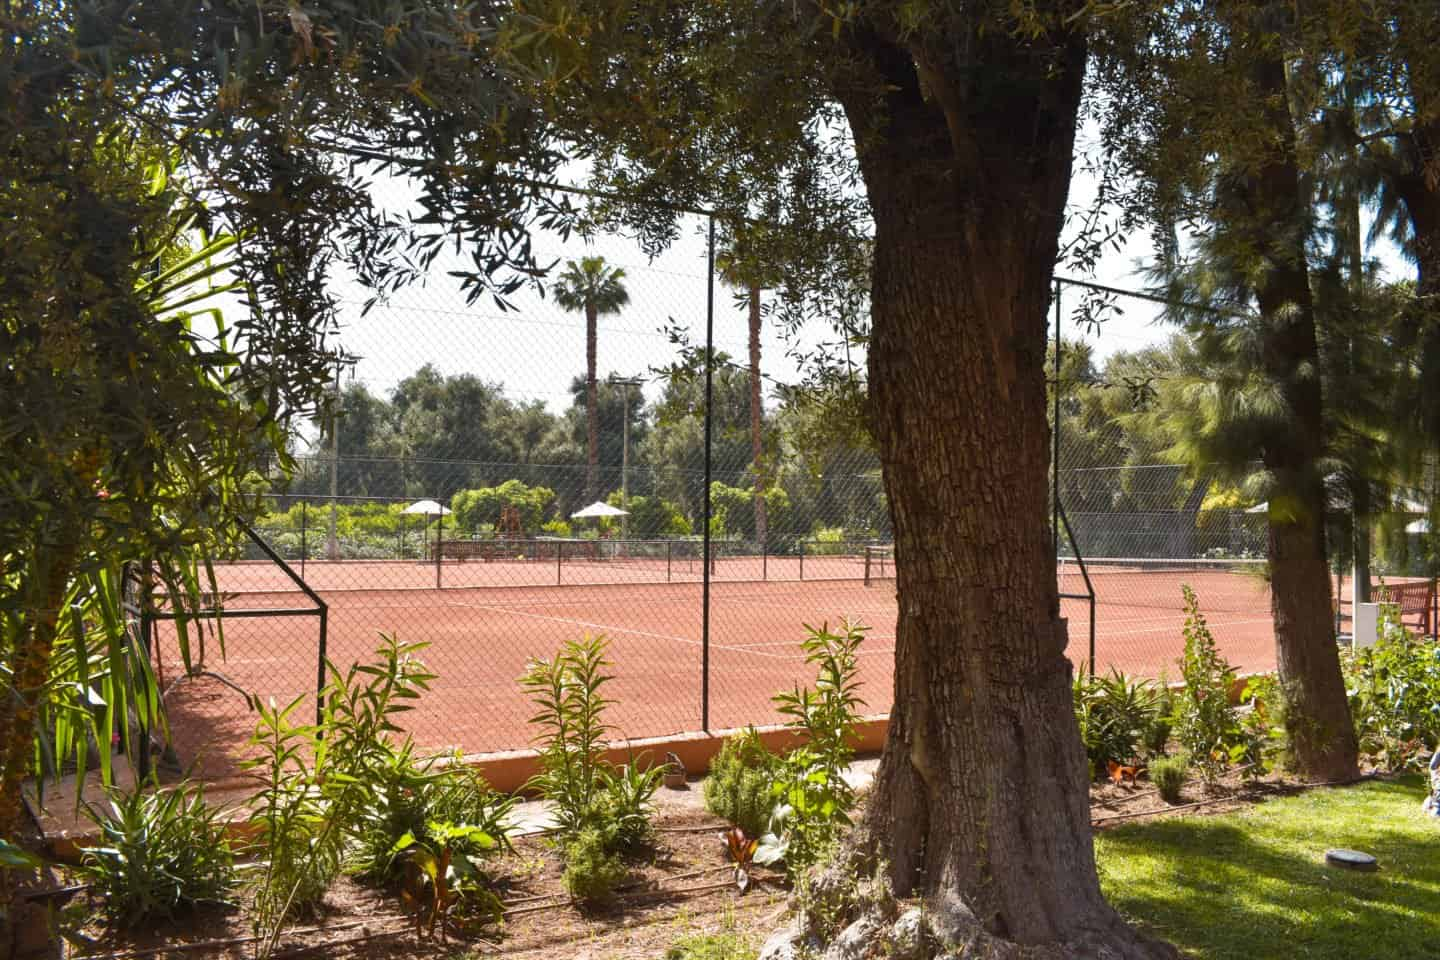 Tennis courts in Marrakech